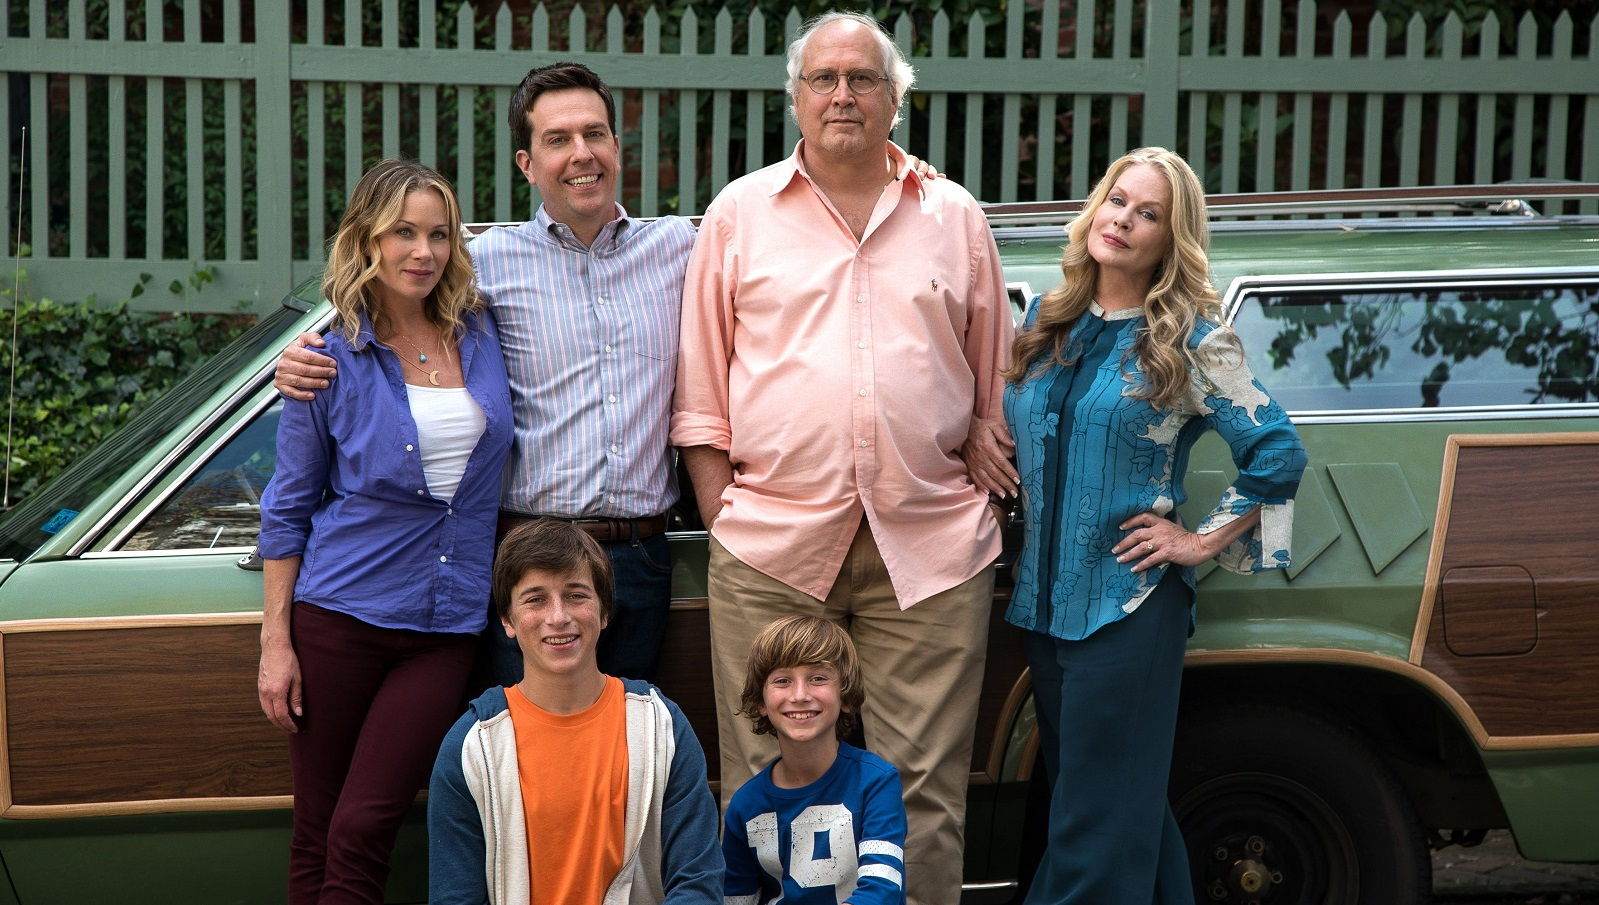 From left to right, Christina Applegate as Debbie Griswold, Skyler Gisondo as James Griswold, Ed Helms as Rusty Griswold, Steele Stebbins as Kevin Griswold, Chevy Chase as Clark Griswold and Beverly D'Angelo as Ellen Griswold in New Line Cinema's comedy 'Vacation,' a Warner Bros. Pictures release.